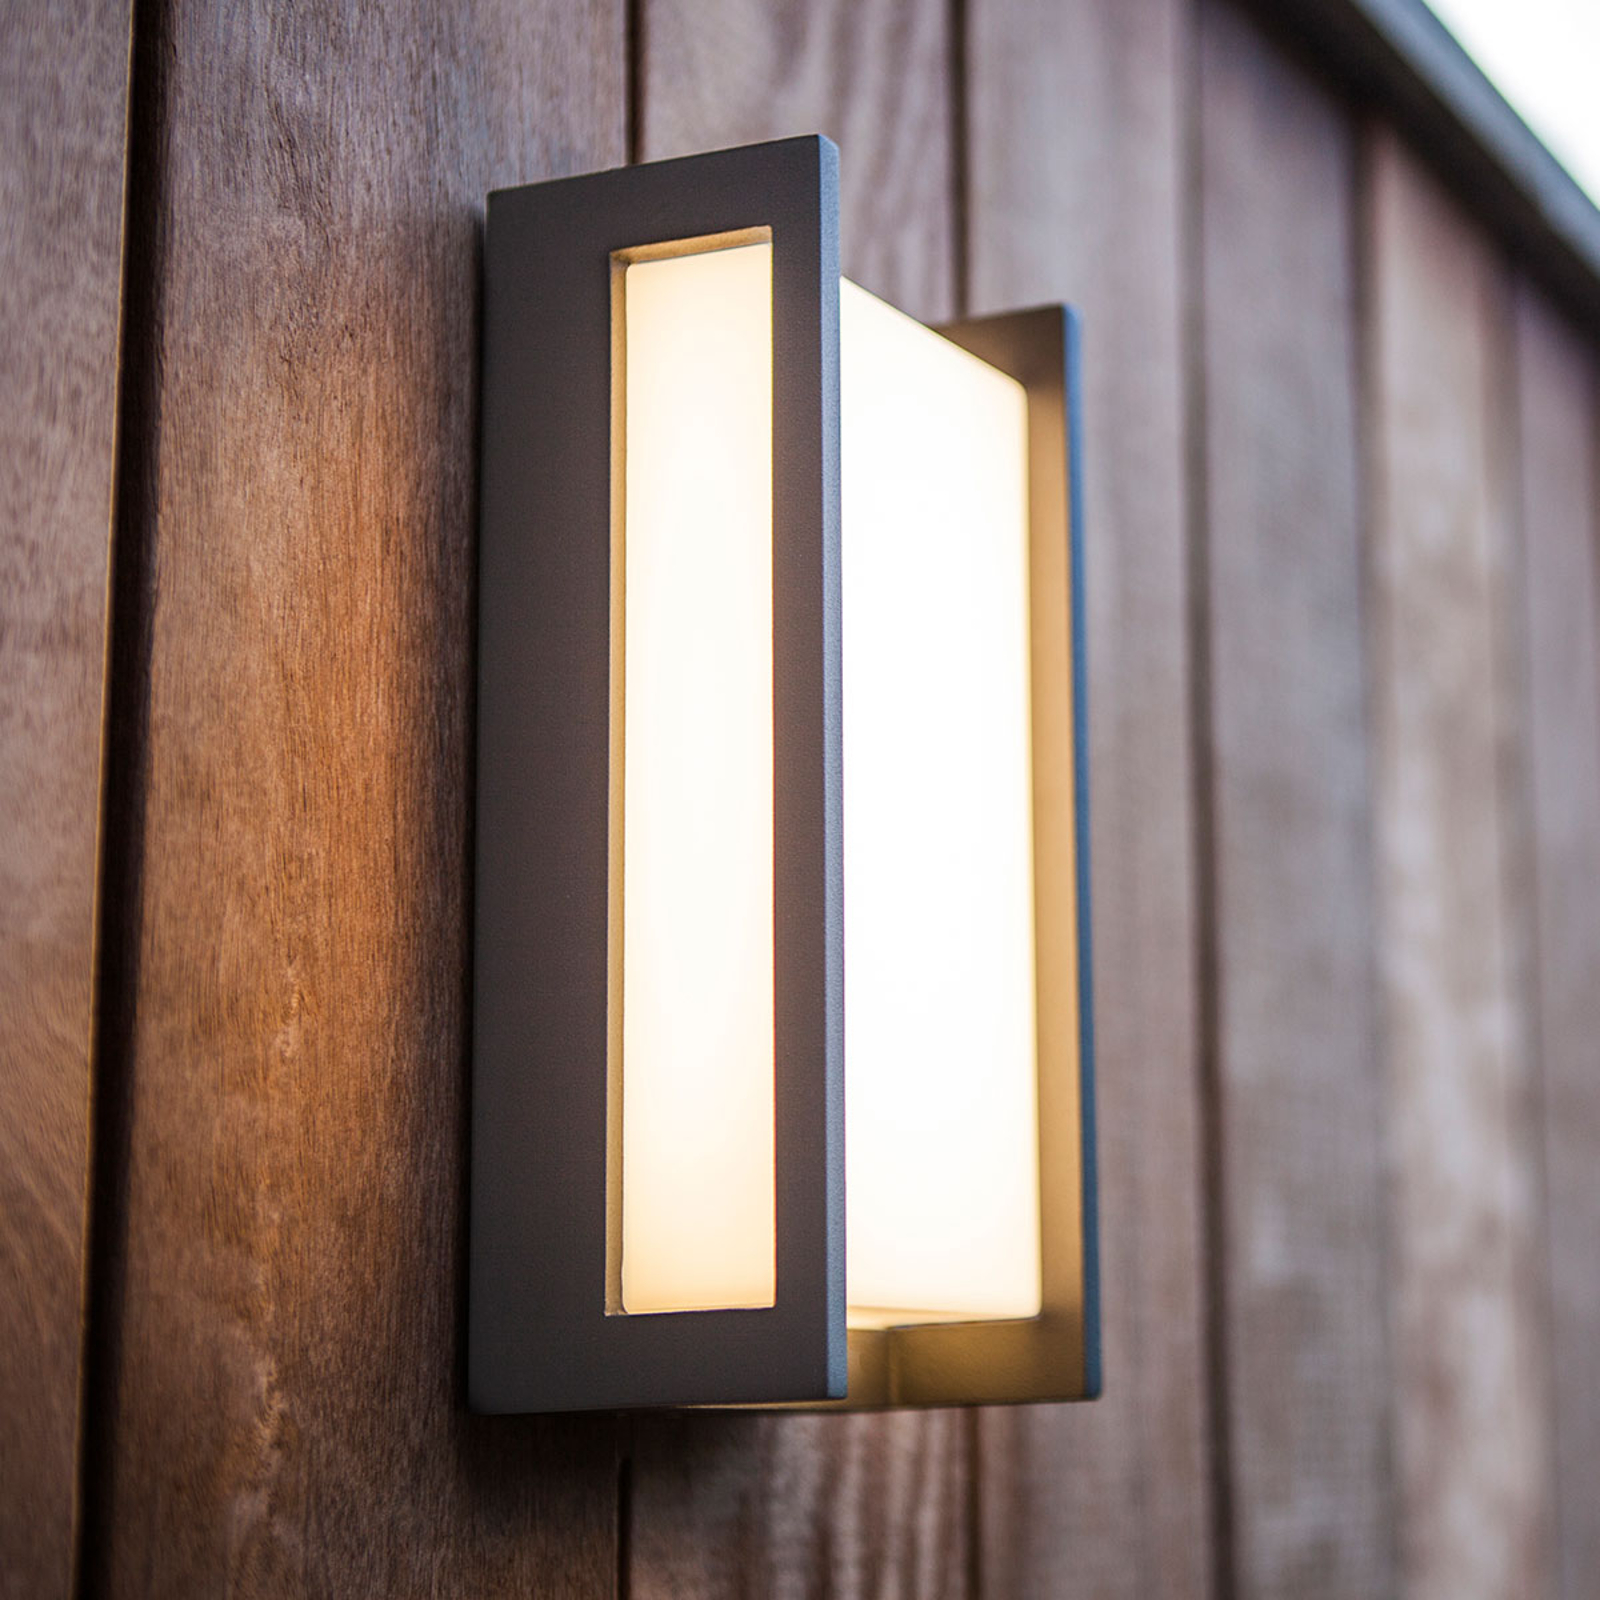 Linear Qubo LED outdoor wall lamp_3006672_1